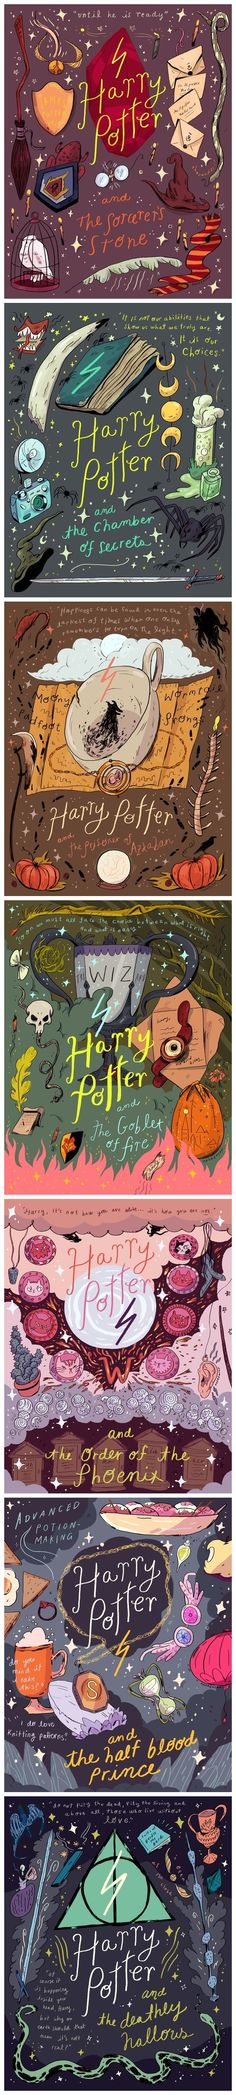 Harry Potter print Illustration from…